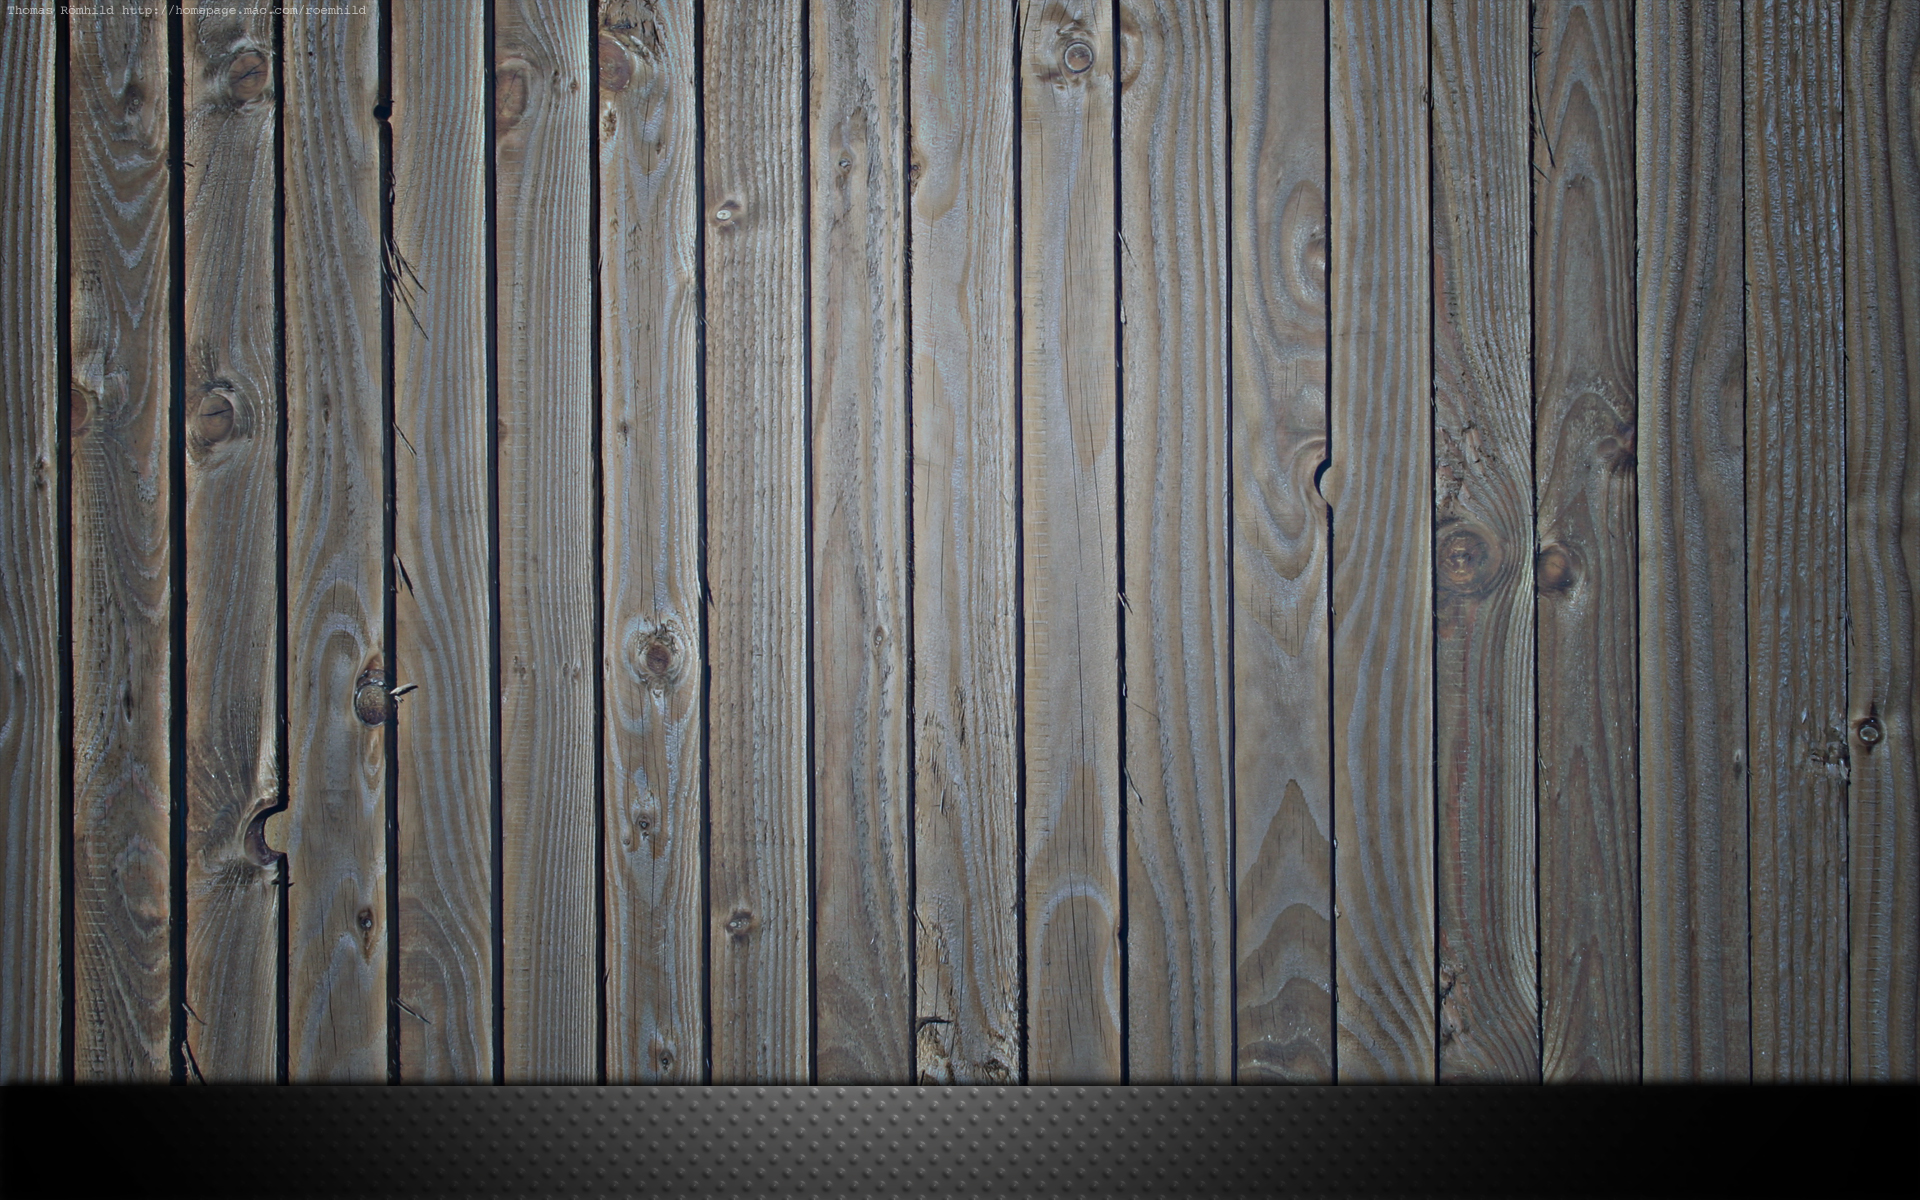 wallpaper, abstract, wood, designs, dock1, grey